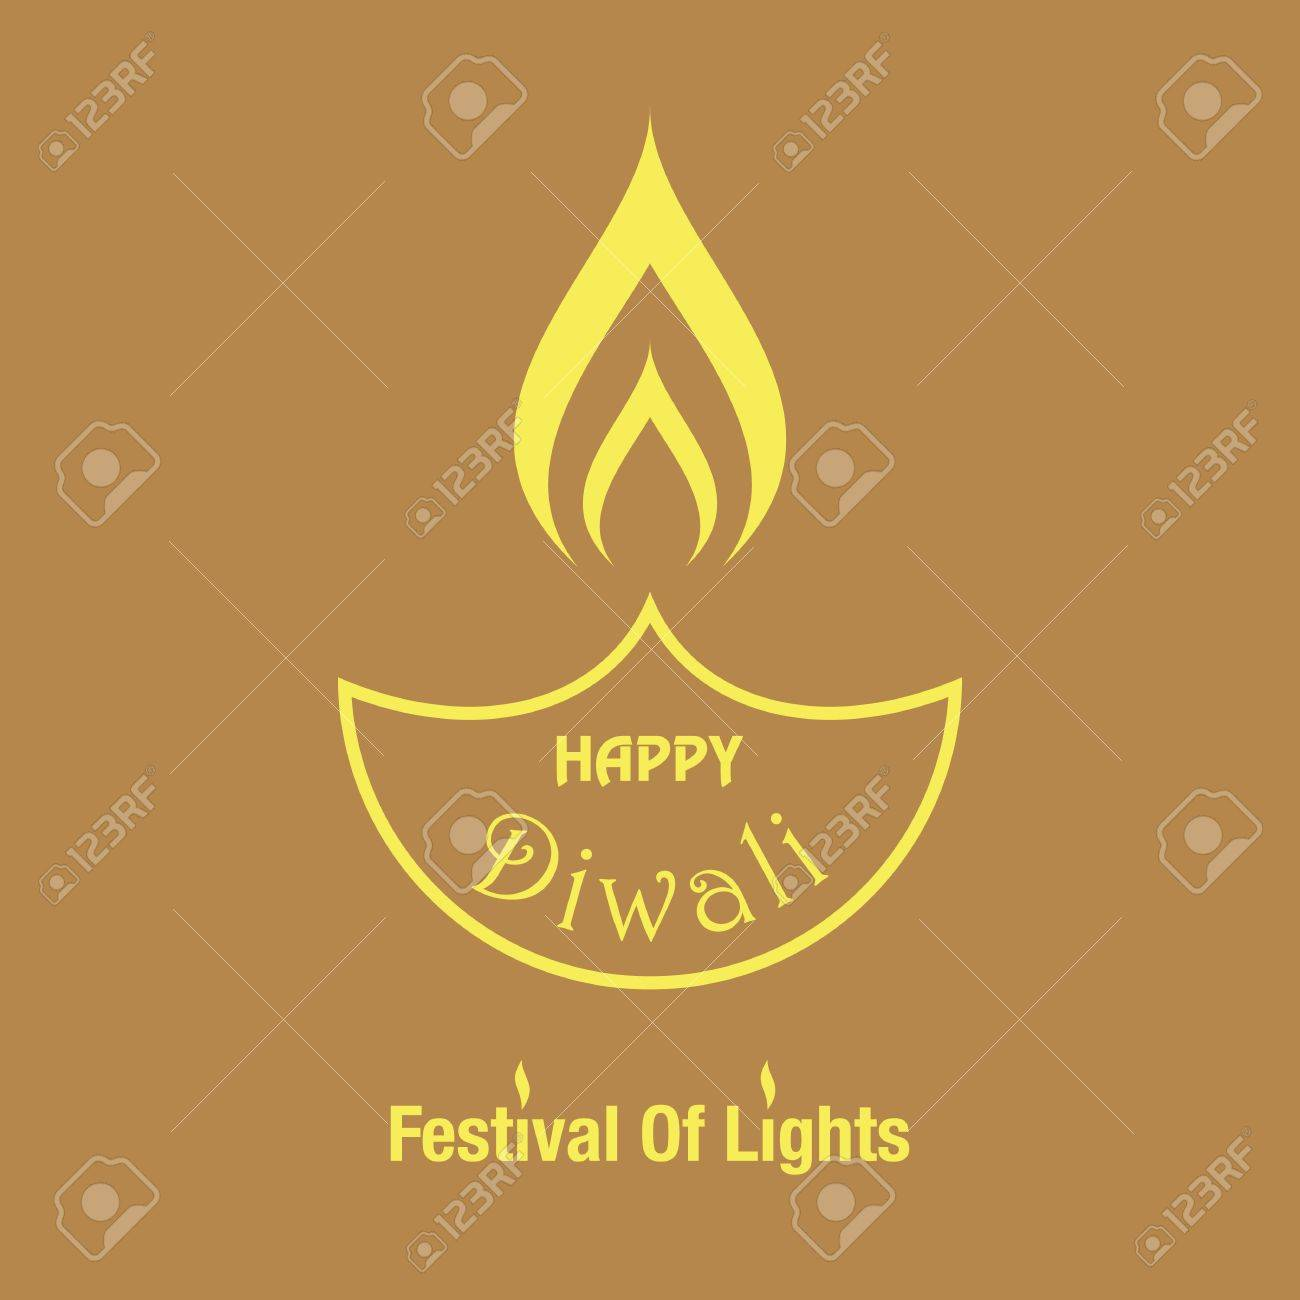 Vector illustration with happy diwali lettering greeting card happy diwali festival of lights greeting card background with indian lamphappy diwali festival greeting background and indian lamp m4hsunfo